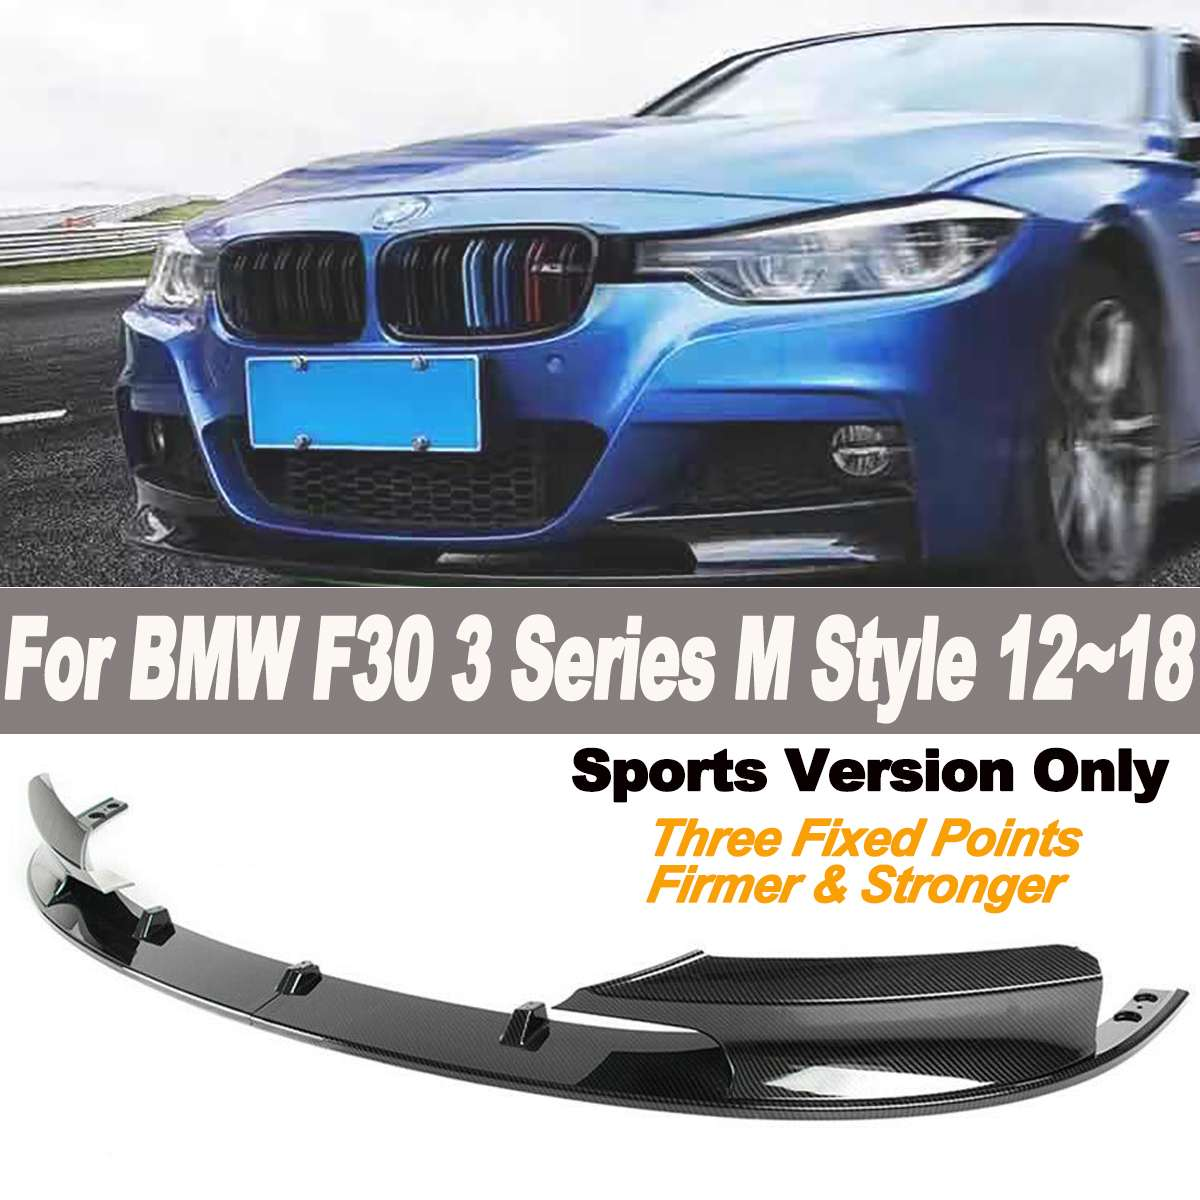 2pcs/set Front Bumper Lip Cover Carbon Fiber Surface for BMW F30 3 Series M Style 2012-2018 Only for Sports Version(China)